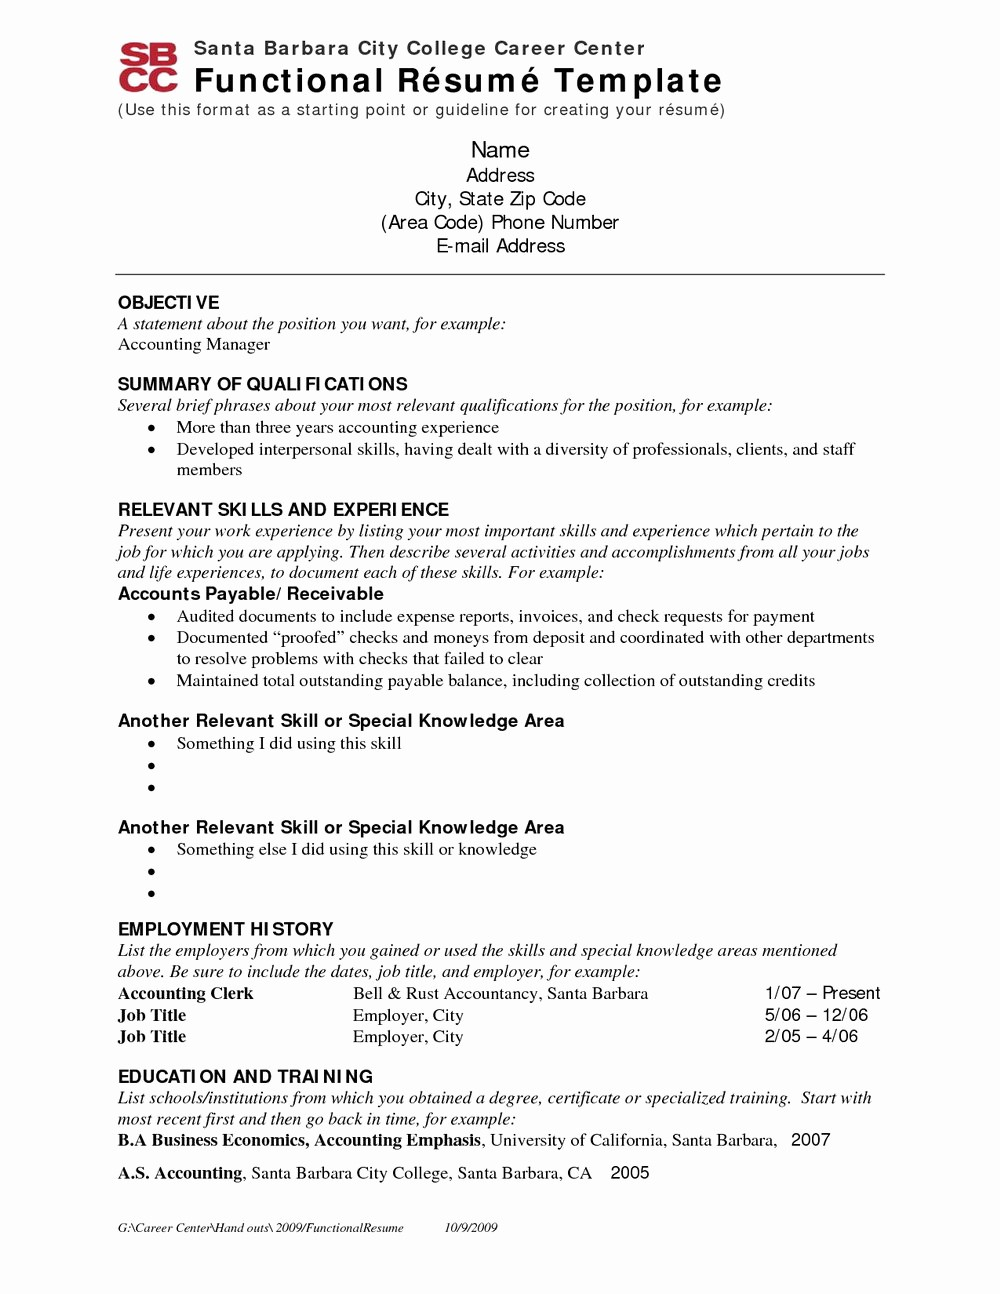 Functional Resume Templates Free Download Beautiful Executive Resume Template Free Download